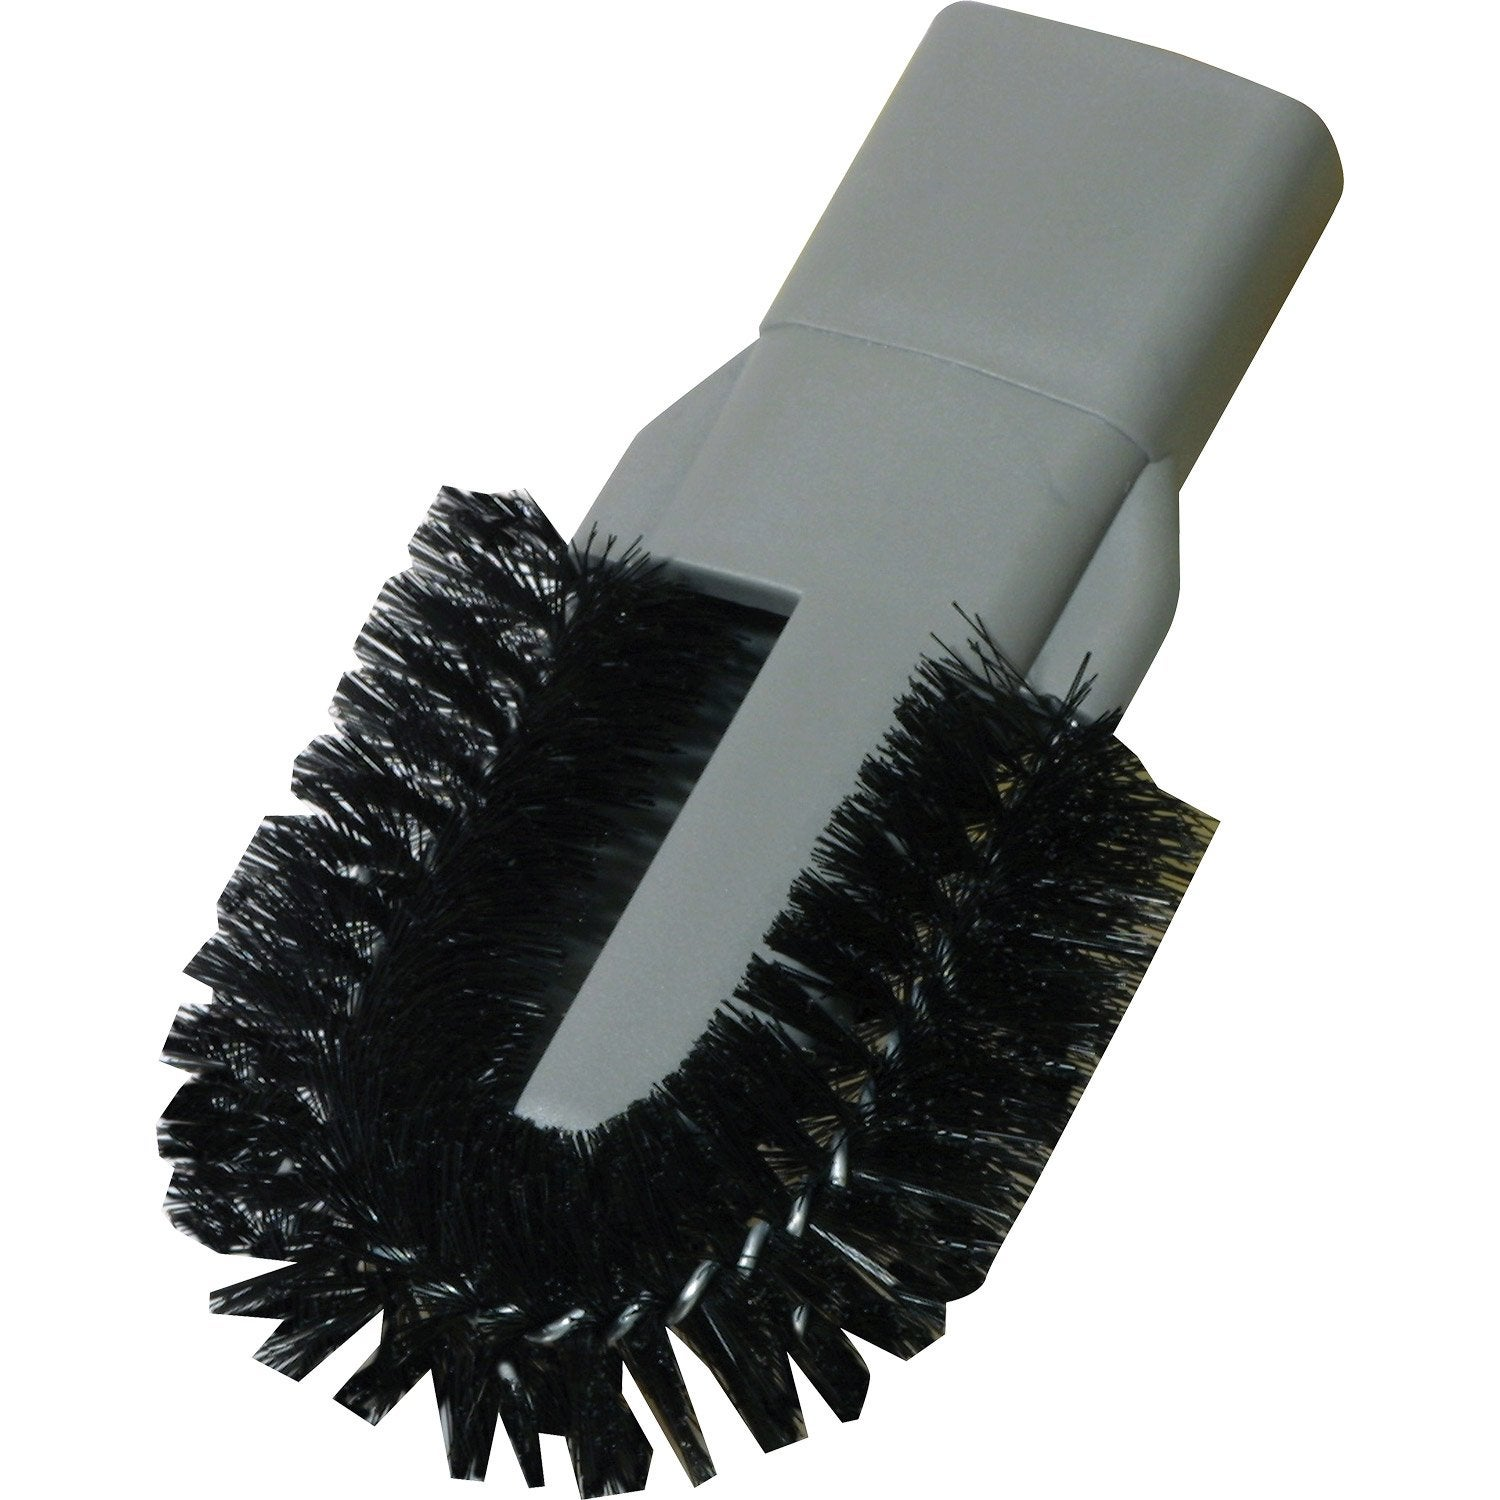 brosse pour radiateur dxbr12 dexter leroy merlin. Black Bedroom Furniture Sets. Home Design Ideas